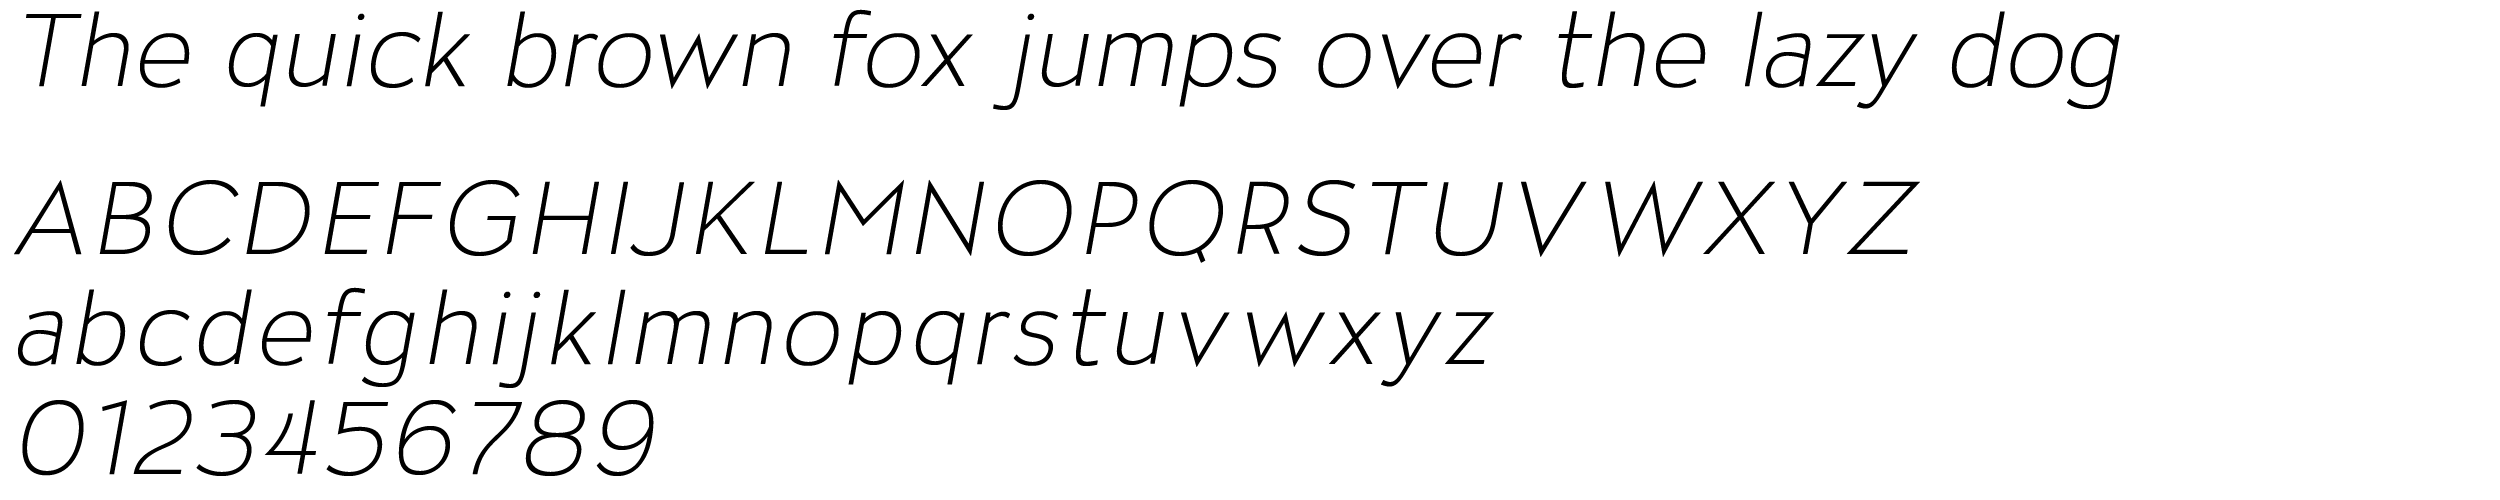 ATC Overlook Extra Light Italic